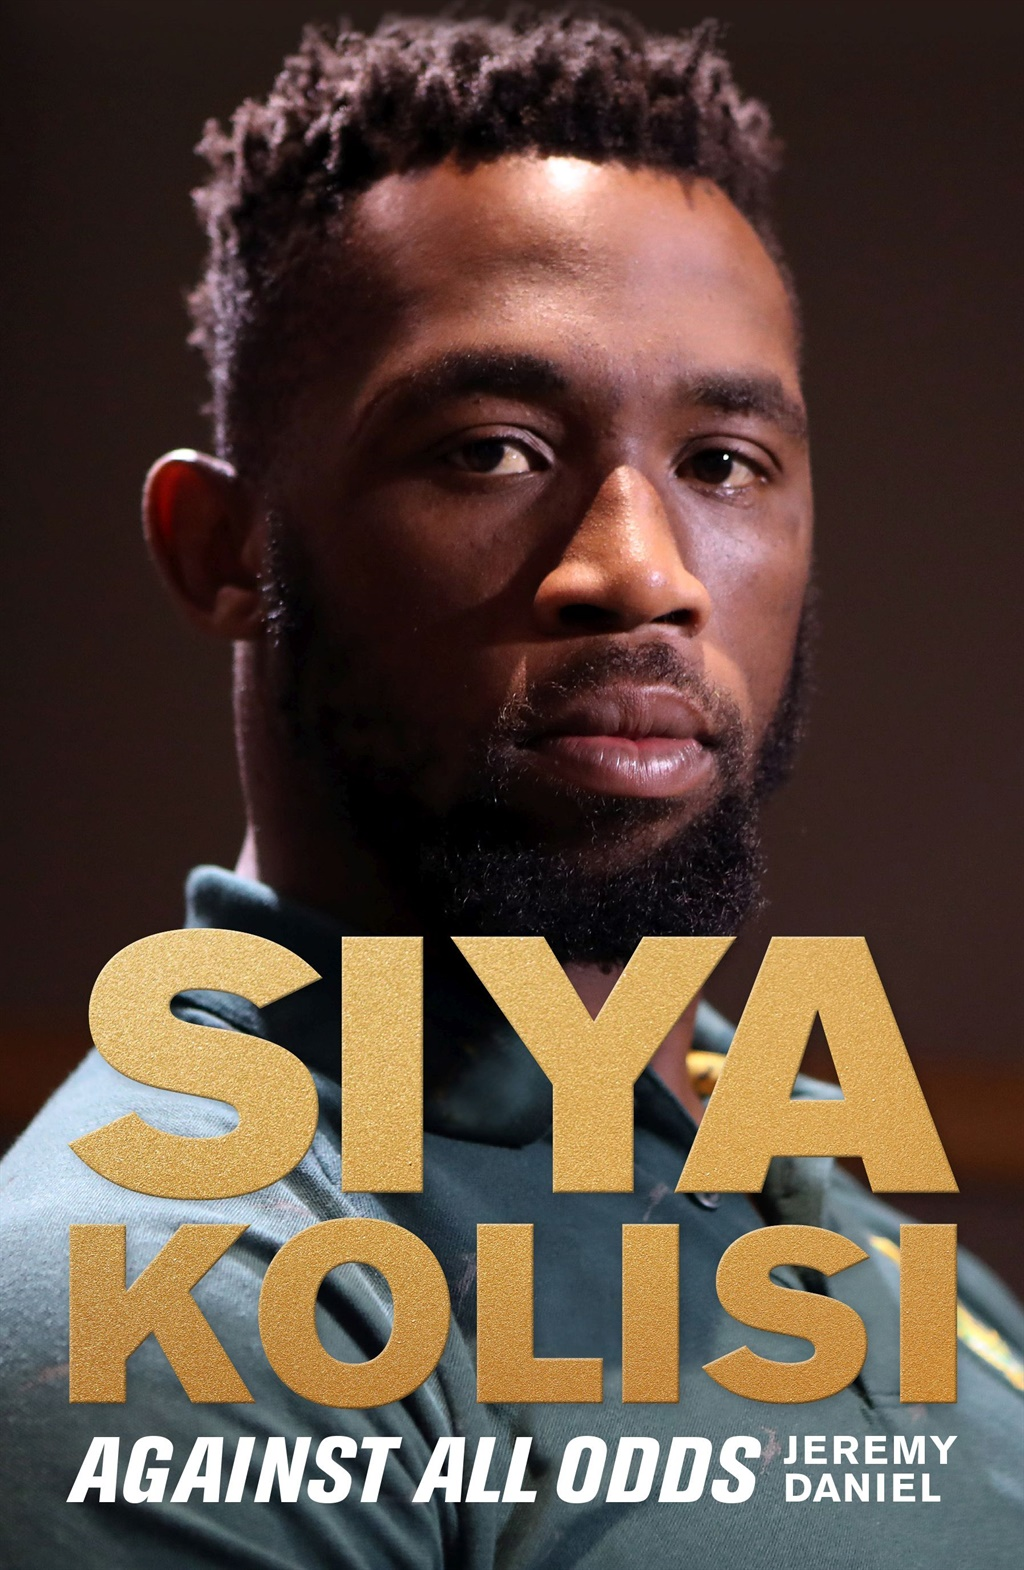 Siya Kolisi: Against All Odds by Jeremy Daniel, published by Jonathan Ball Publishers.